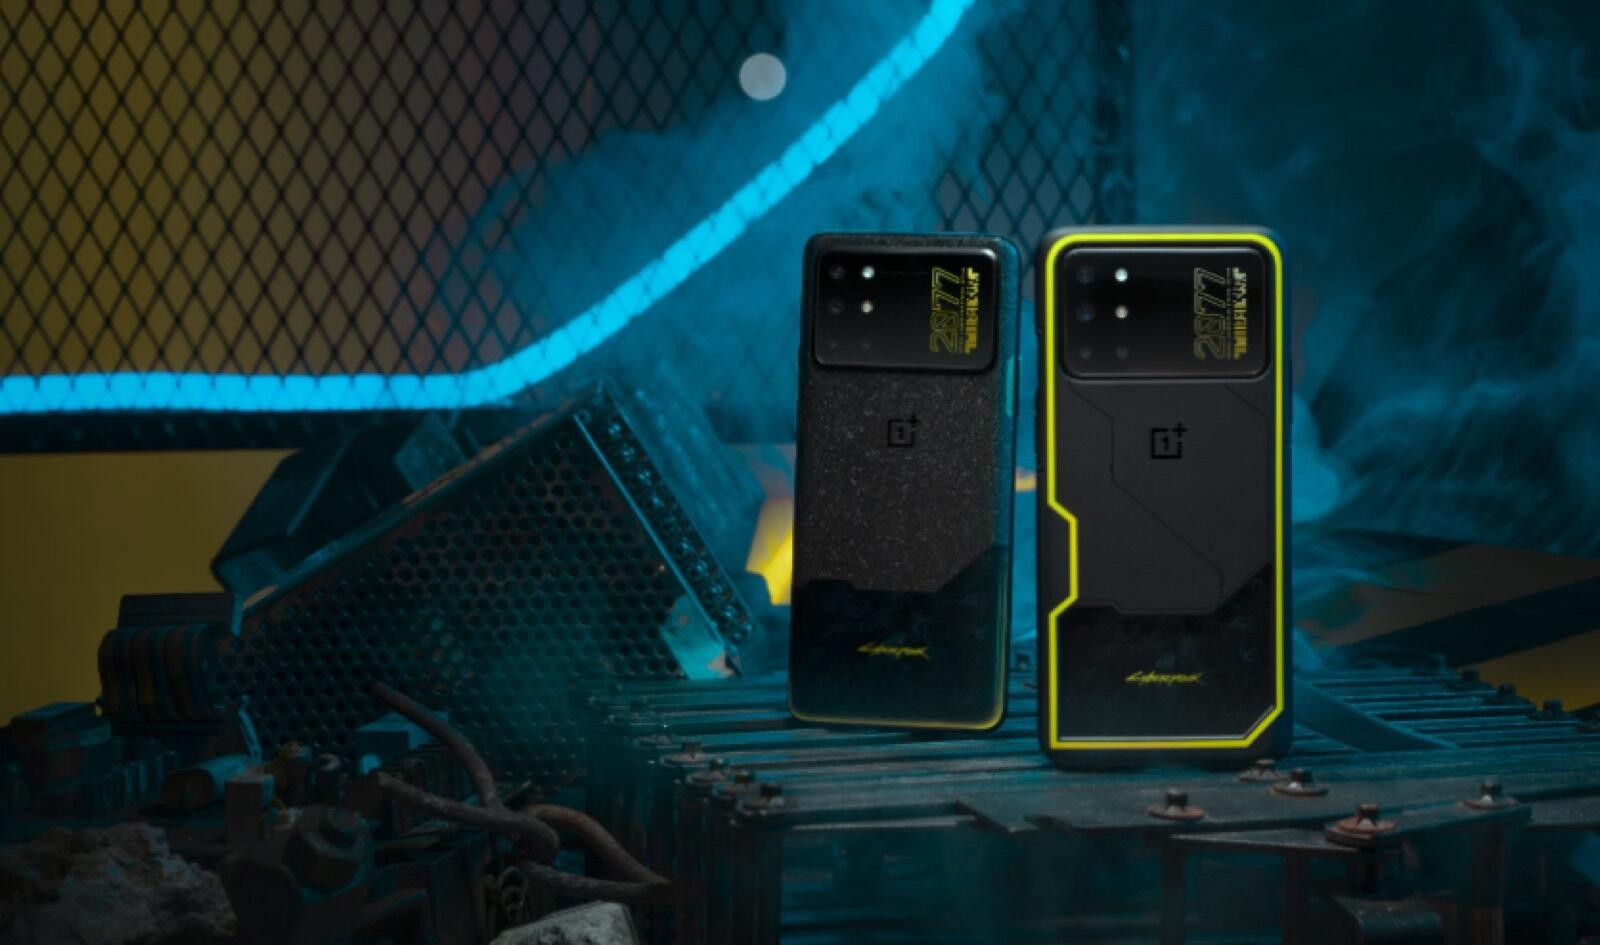 OnePlus 8T's Cyberpunk 2077 smartphone looks like something straight out of the game